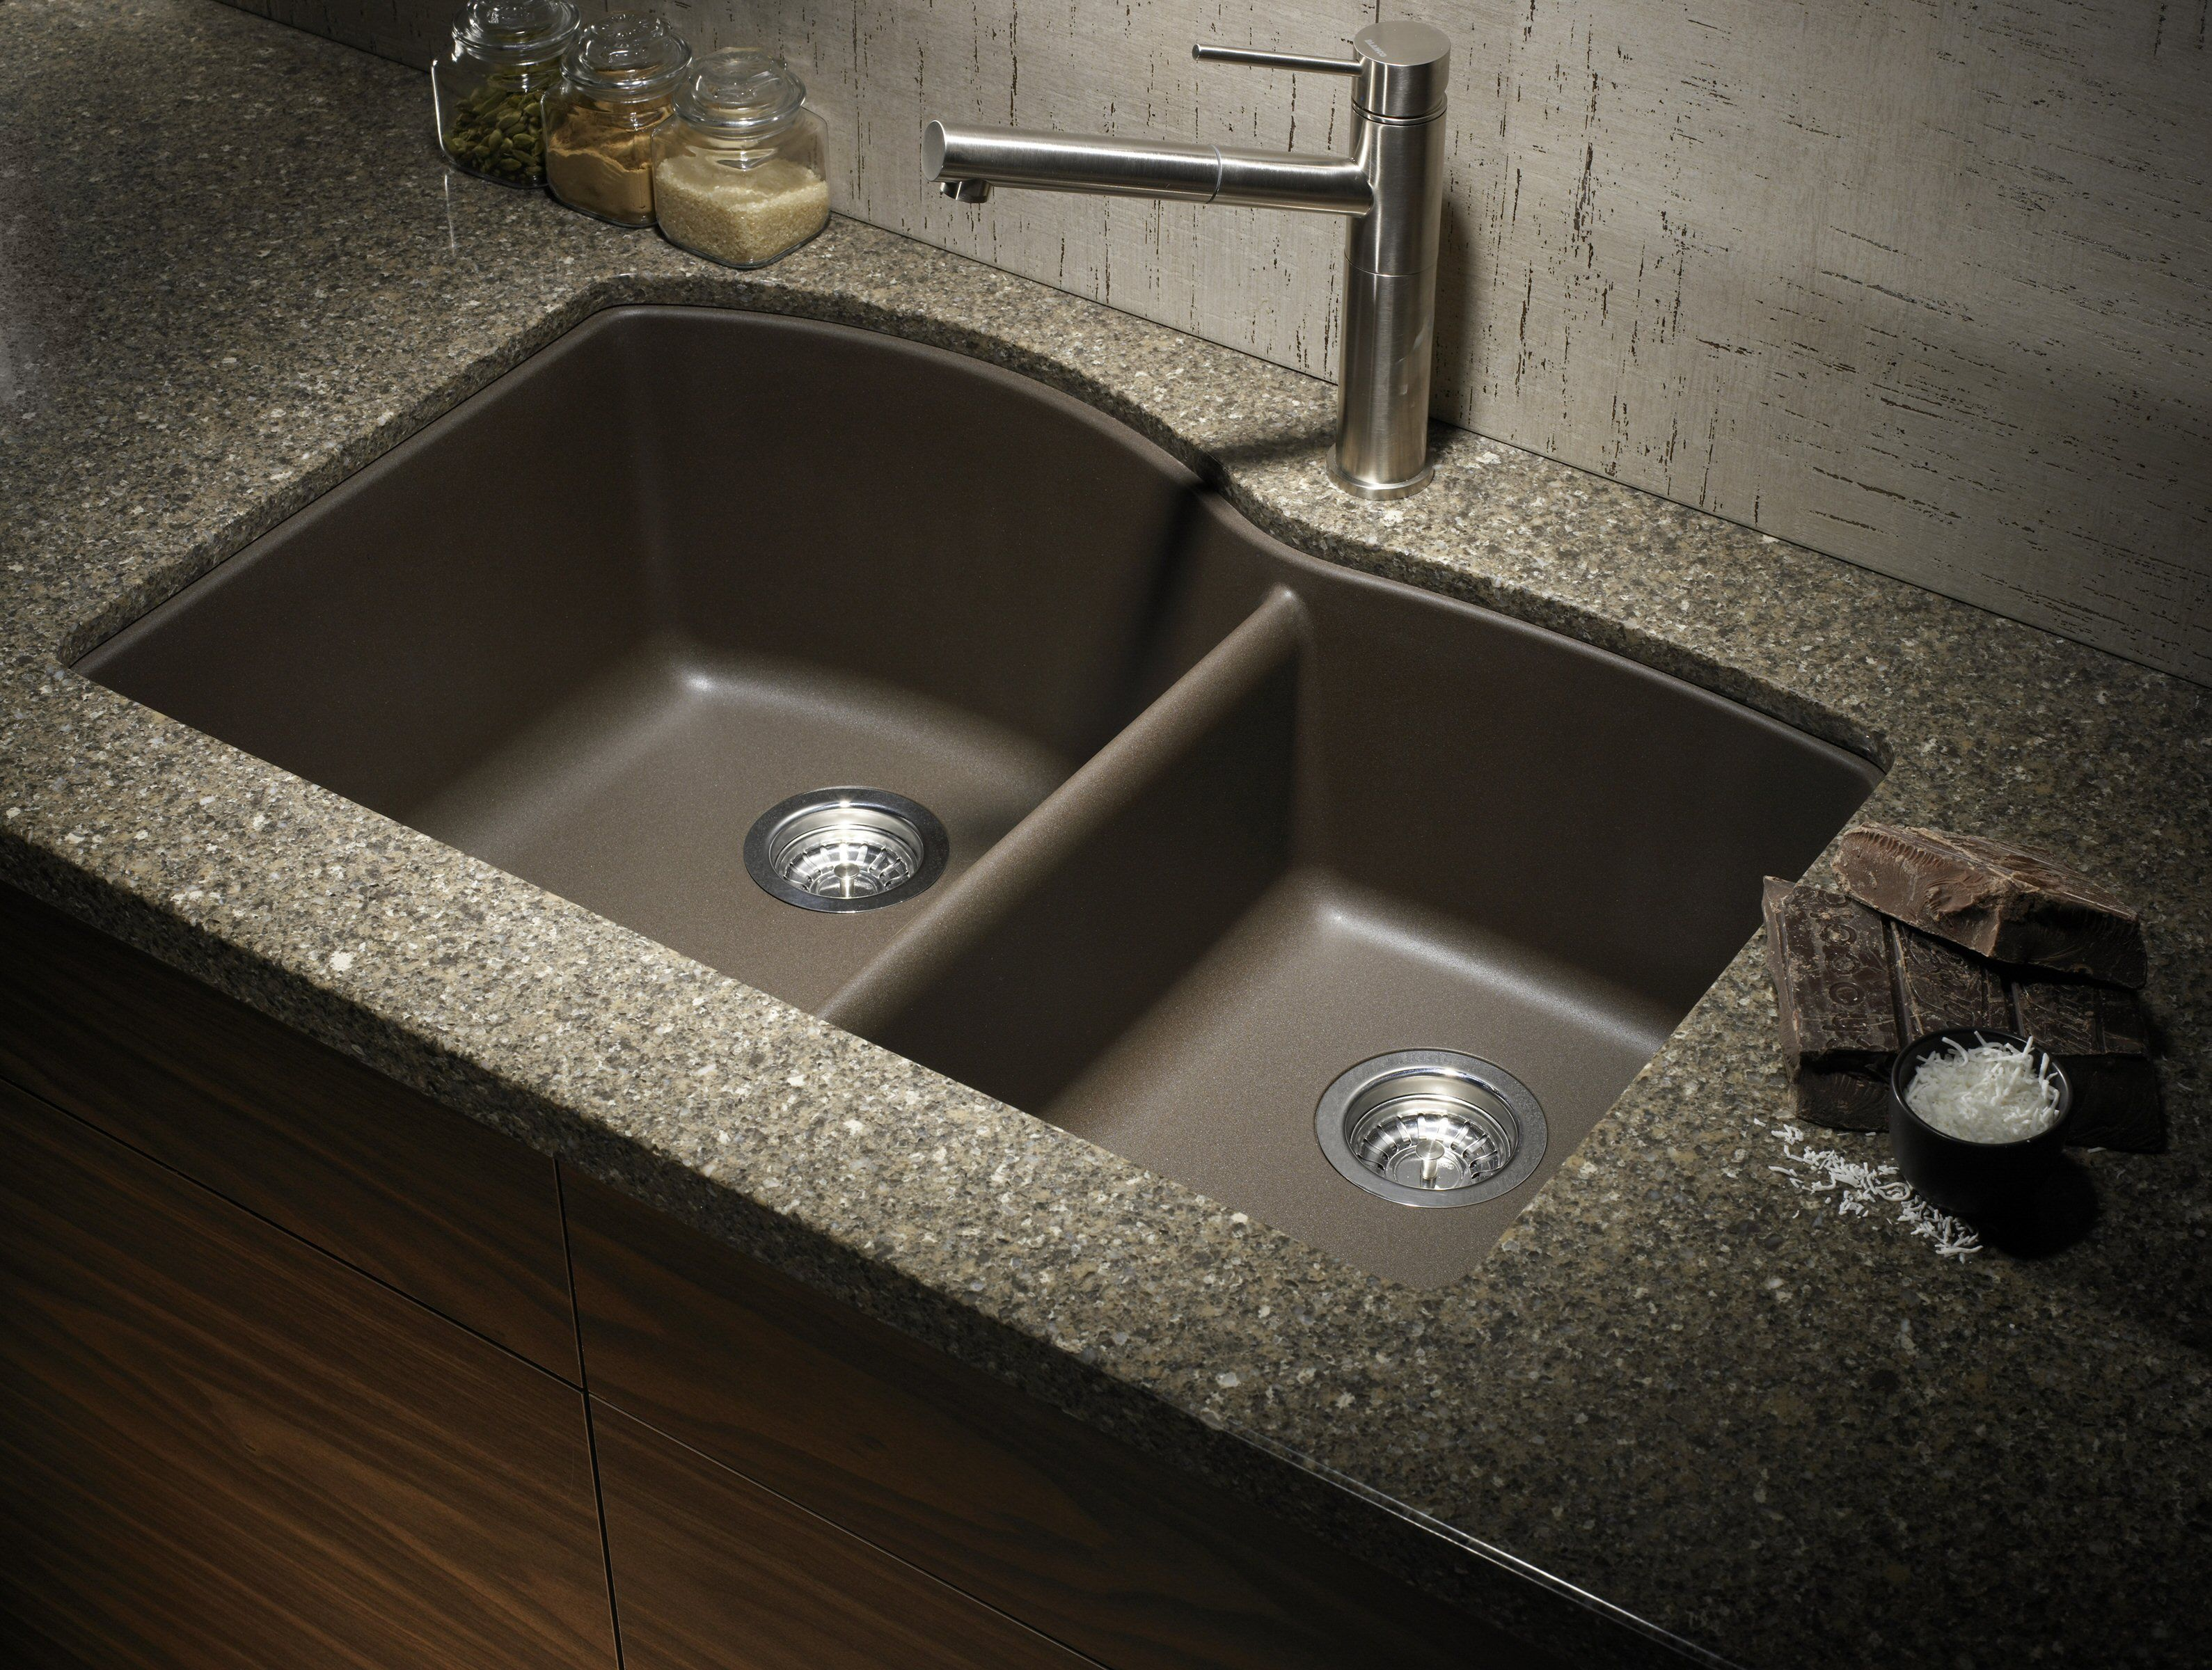 Granite composite sinks pros and cons - Ants Or Other Bugs Around Kitchen Sink Bathroom Put Mixture Of Dish Soap And Clean Granitegranite Sinksgranite Composite